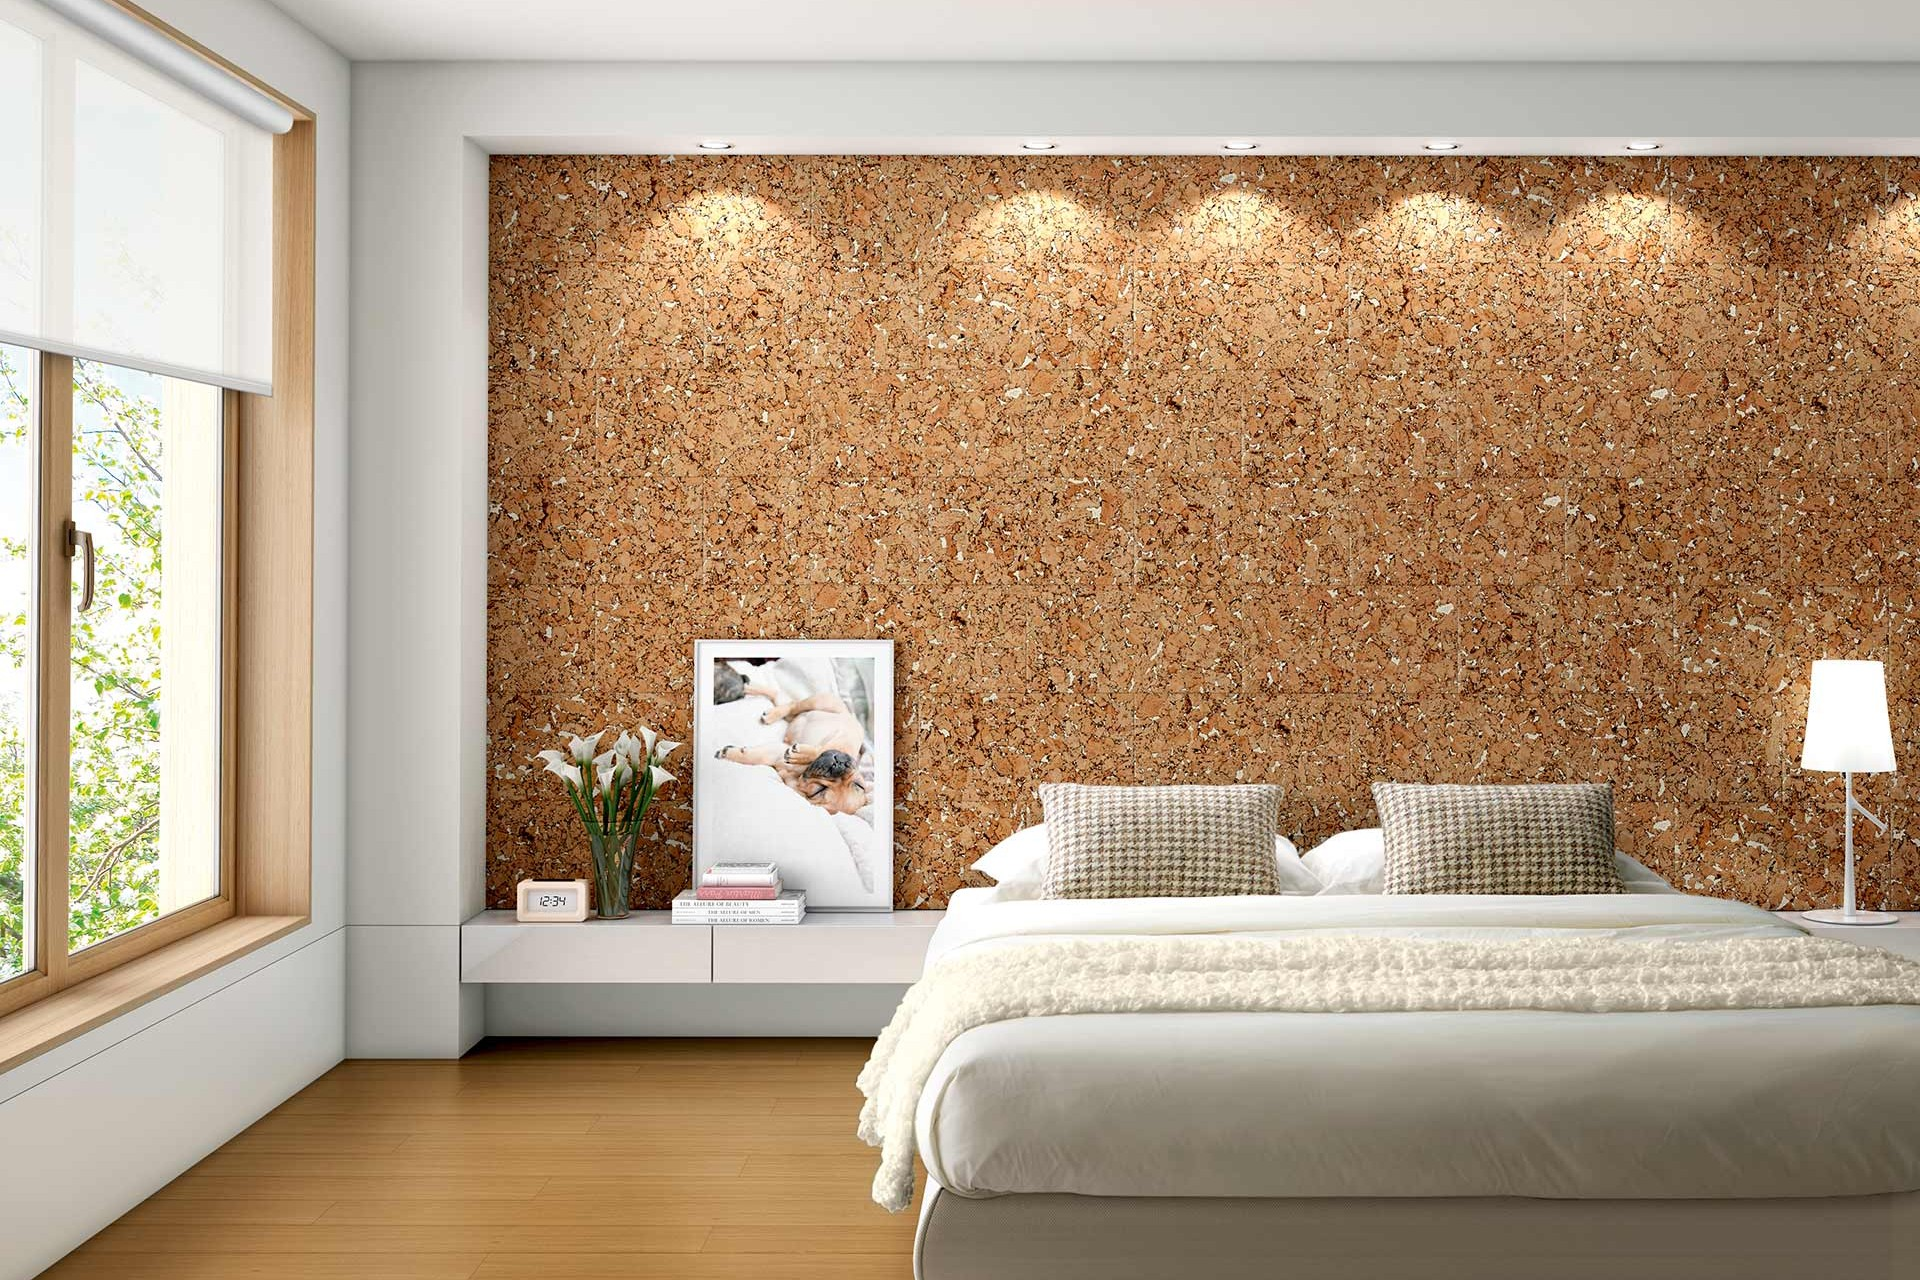 Cork headboard in bedroom